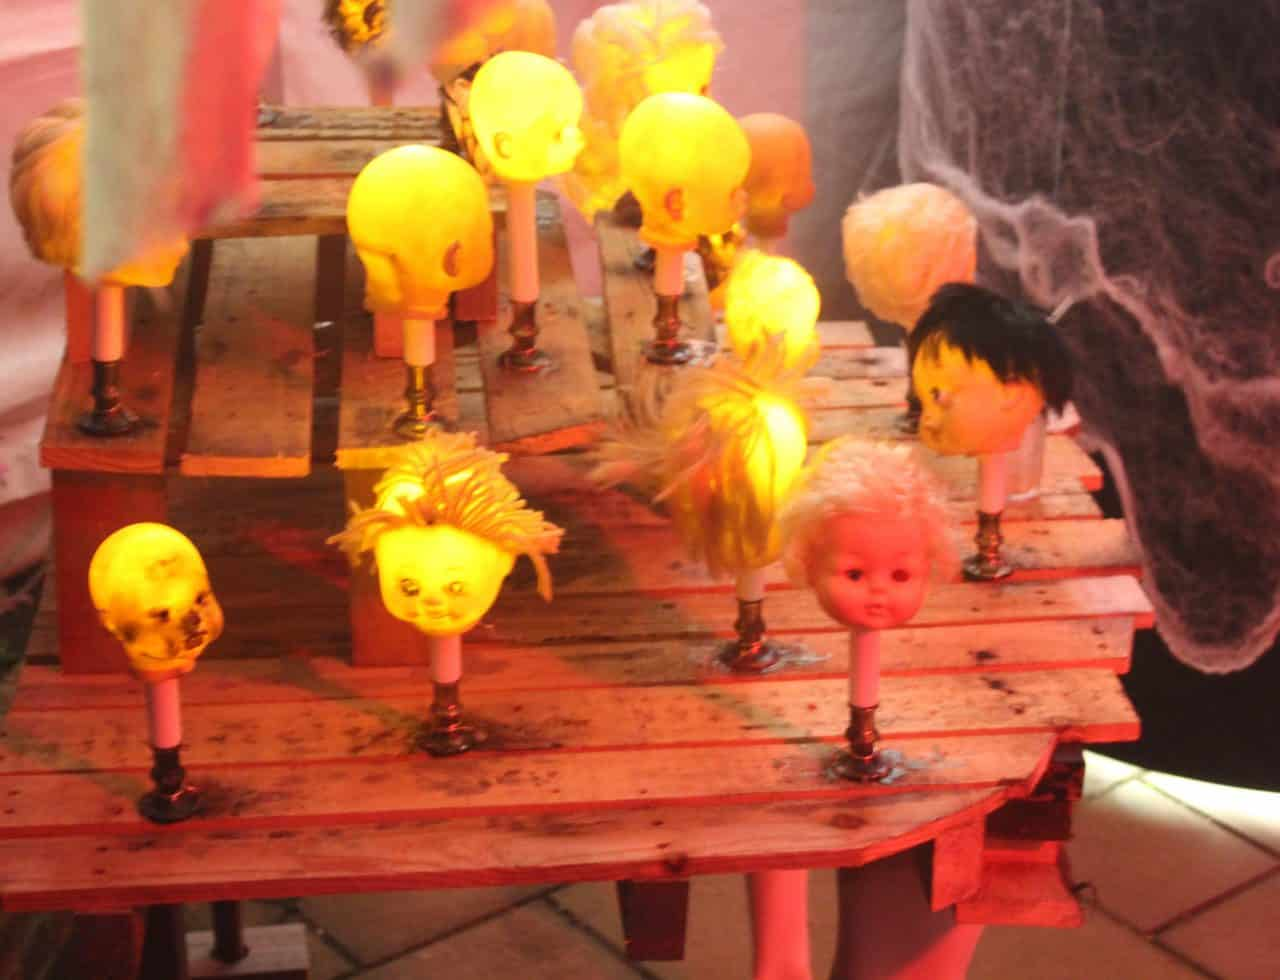 Bespoke Halloween Decorations we used to complete our Halloween venue dressing.